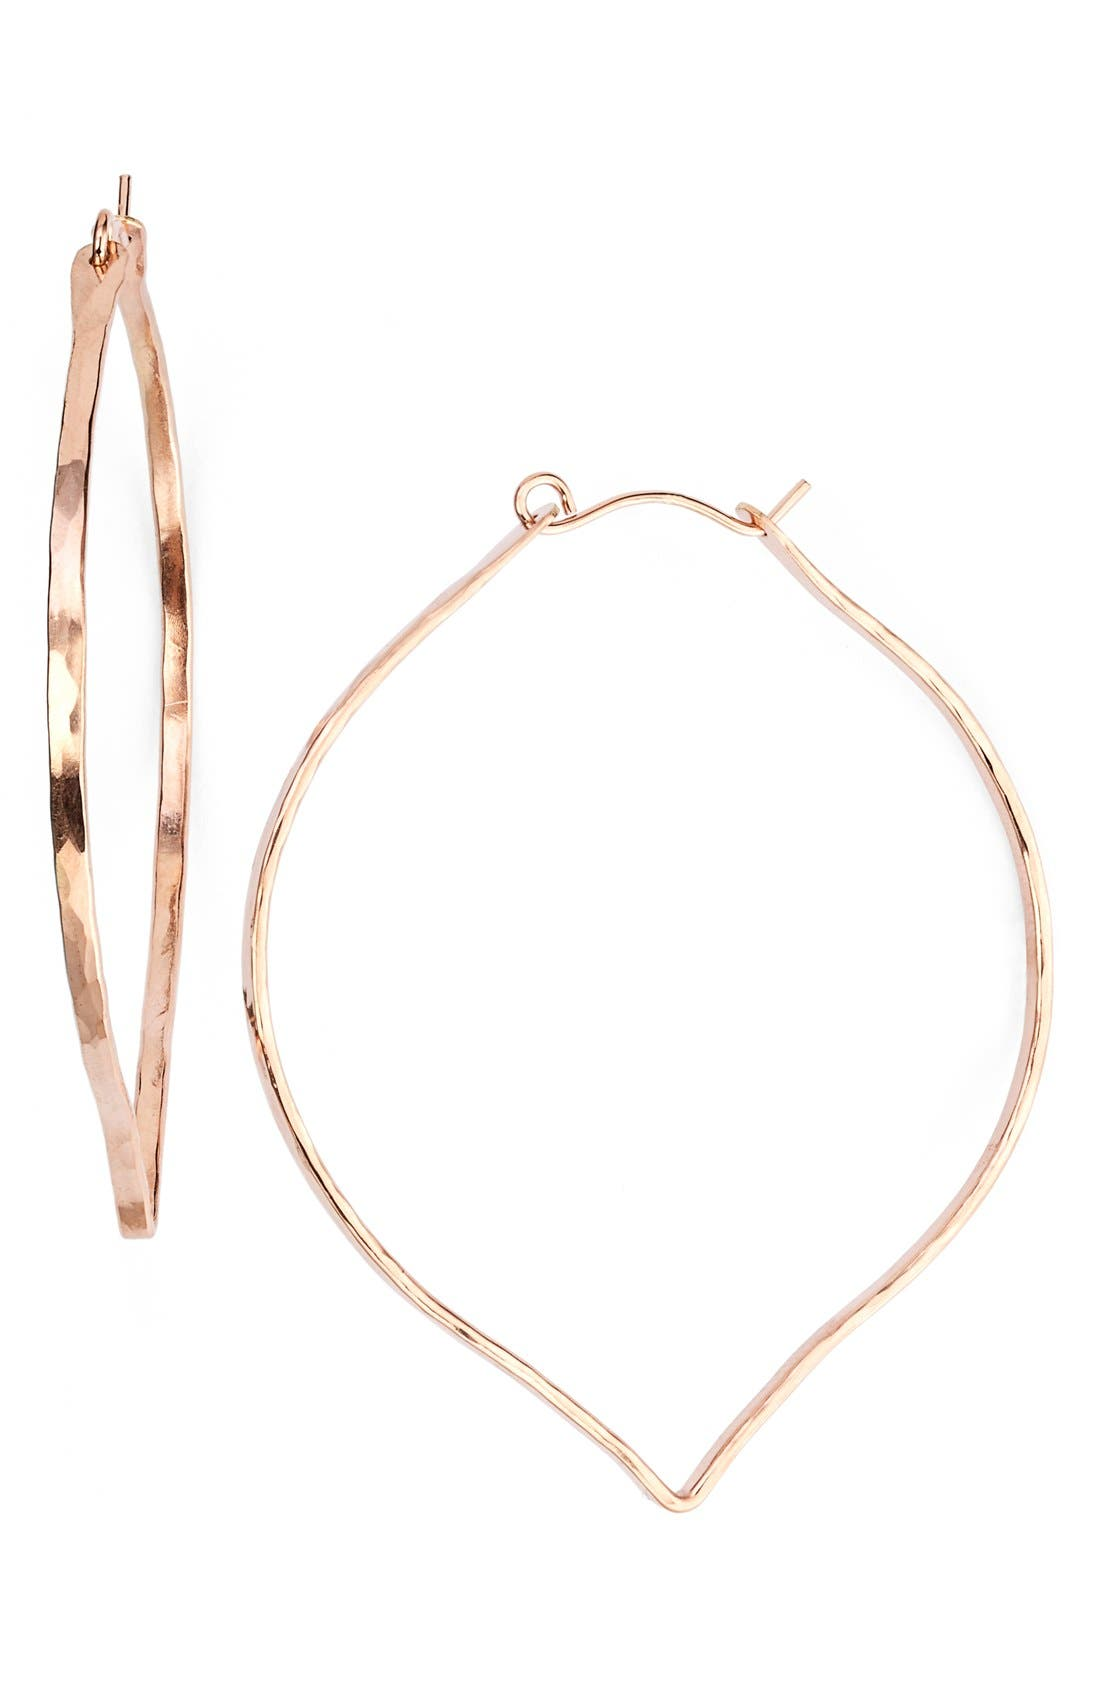 Ija 'Large' 14k-Rose Gold Fill Lotus Hoop Earrings,                         Main,                         color, 220